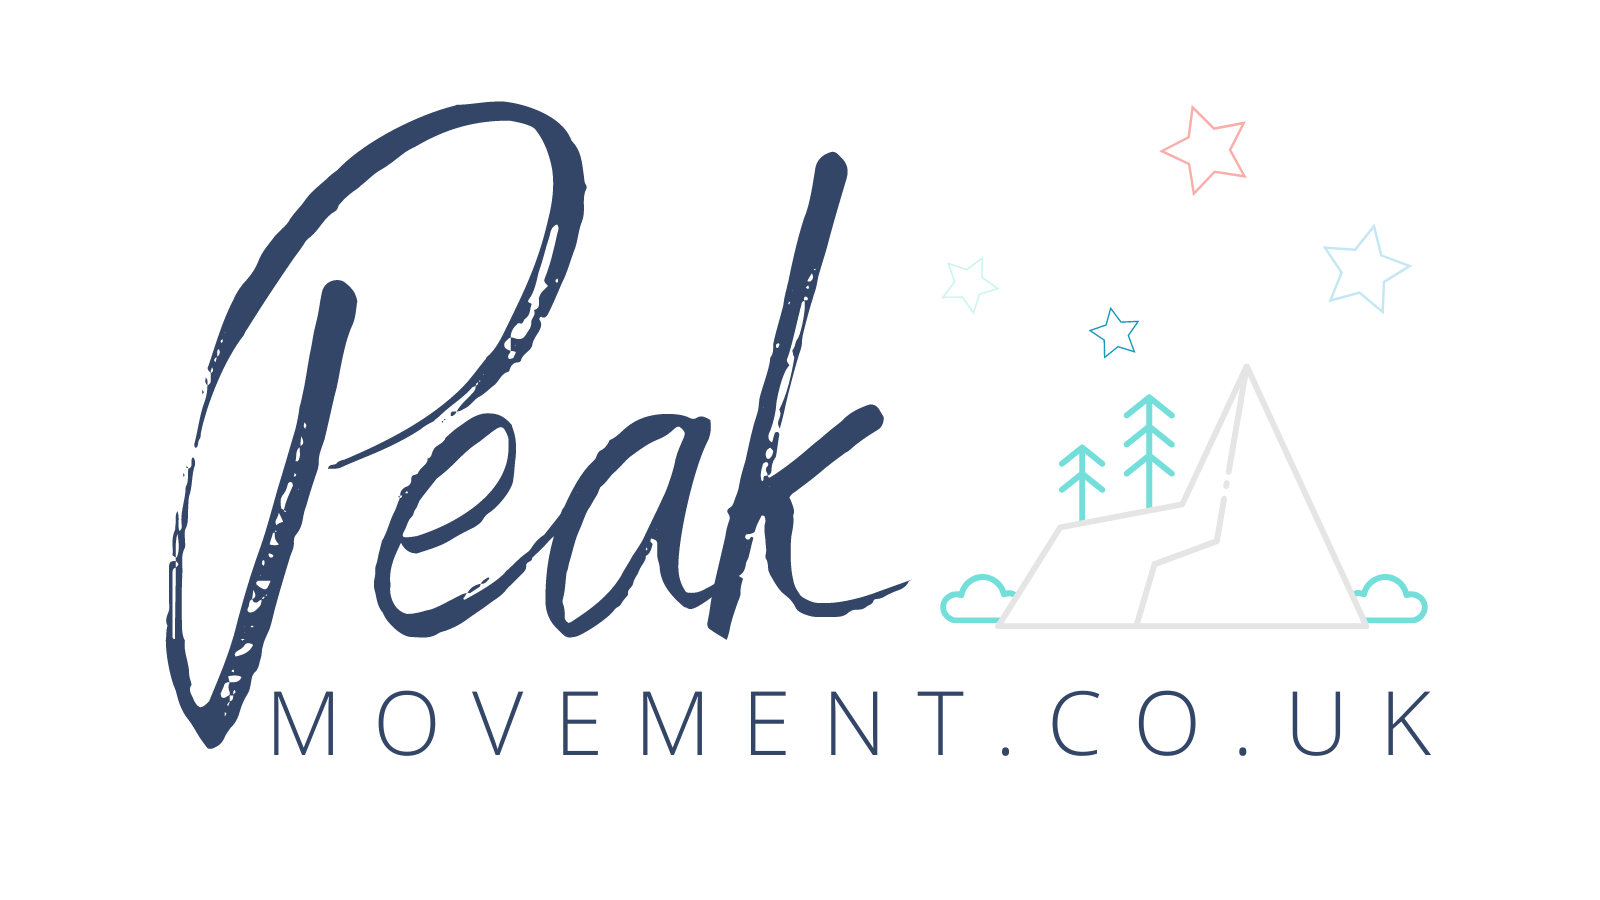 Peak Movement®